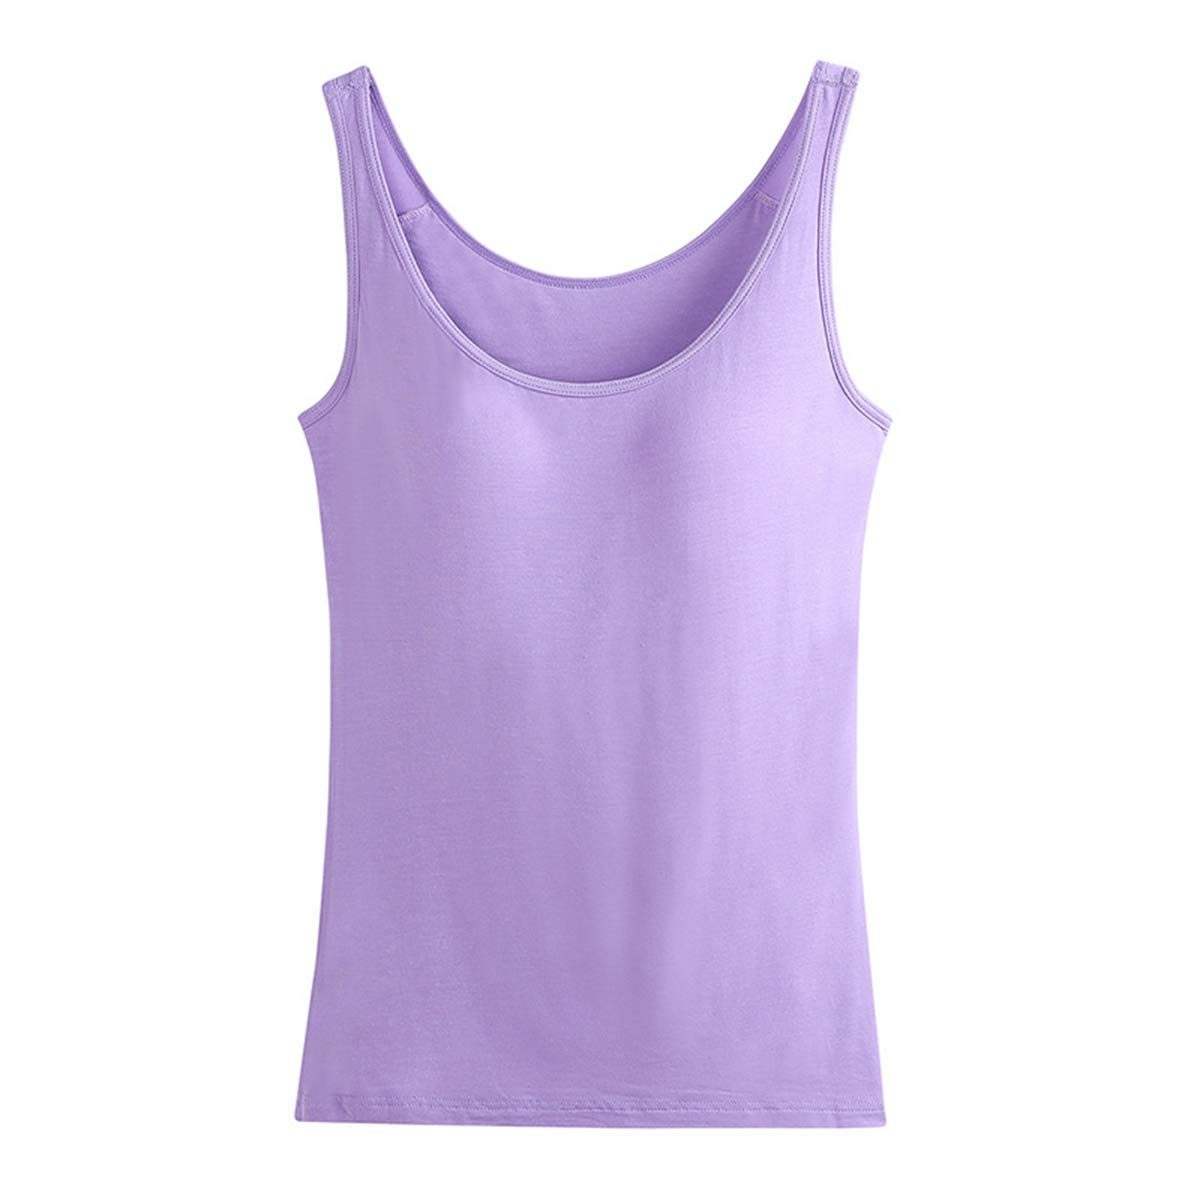 d0b7008096280 Get Quotations · Oulinect Ladies Cotton Built-in Padded Bra Tank Top Active  Workout Camisoles Top for Women